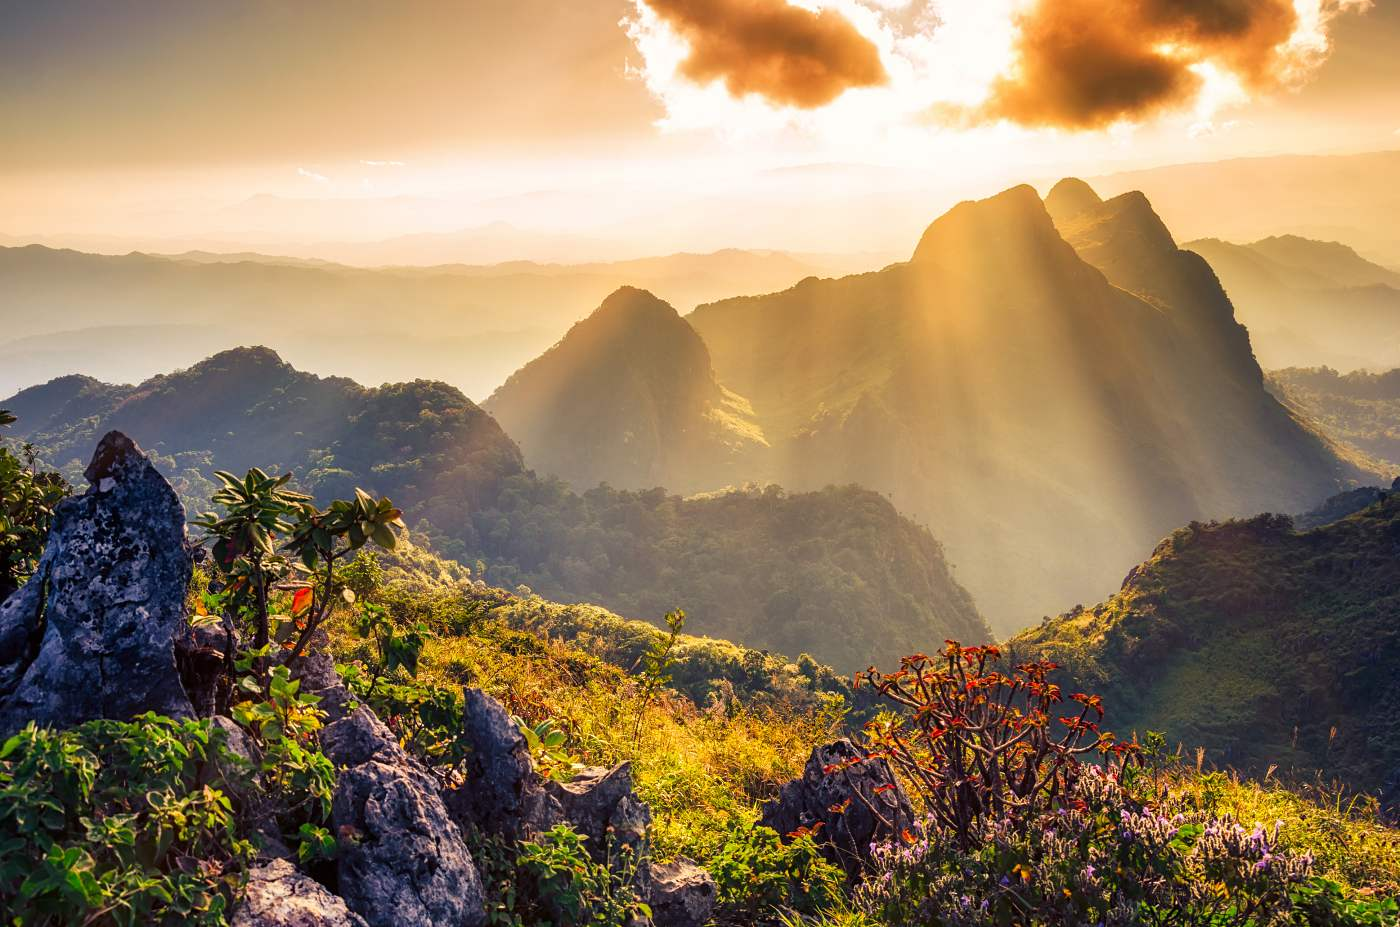 1400 Raylight sunset Landscape at Doi Luang Chiang Dao shutterstock 249650512